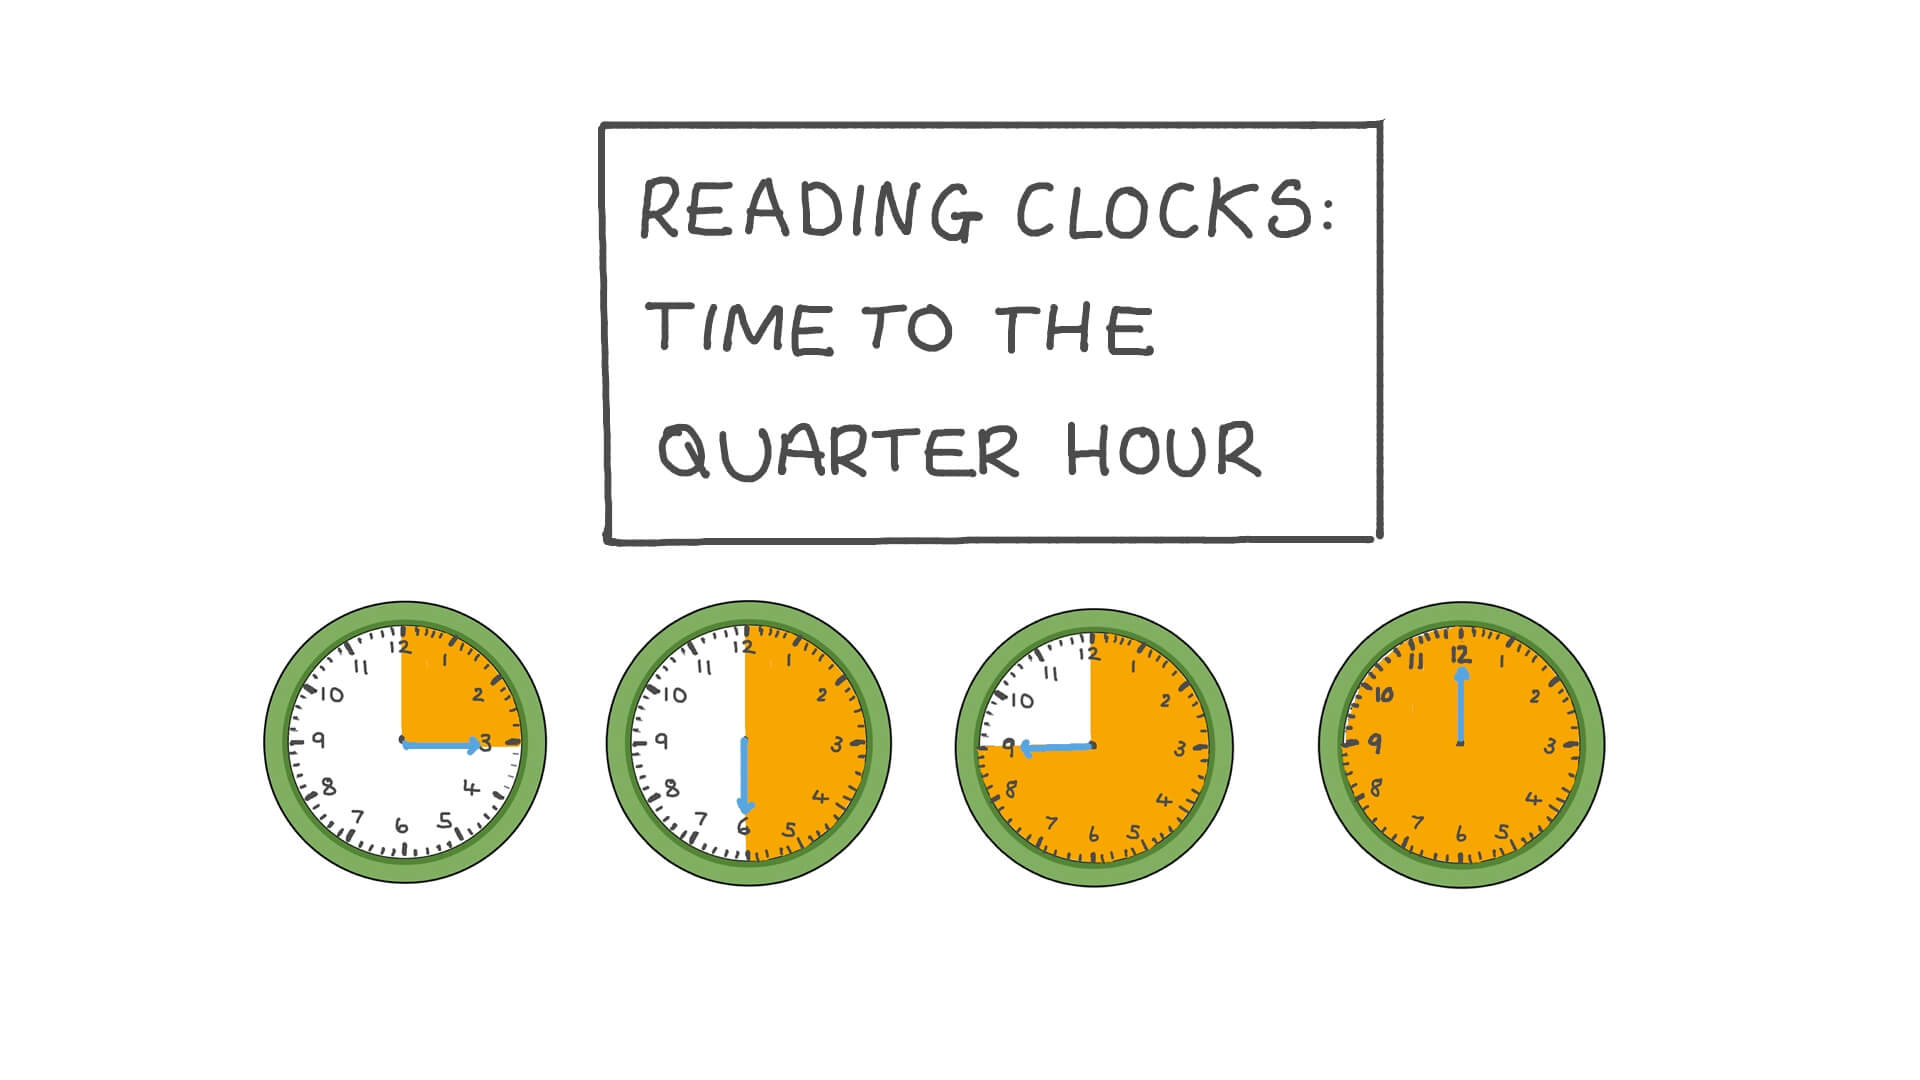 hight resolution of Lesson: Reading Clocks: Time to the Quarter Hour   Nagwa